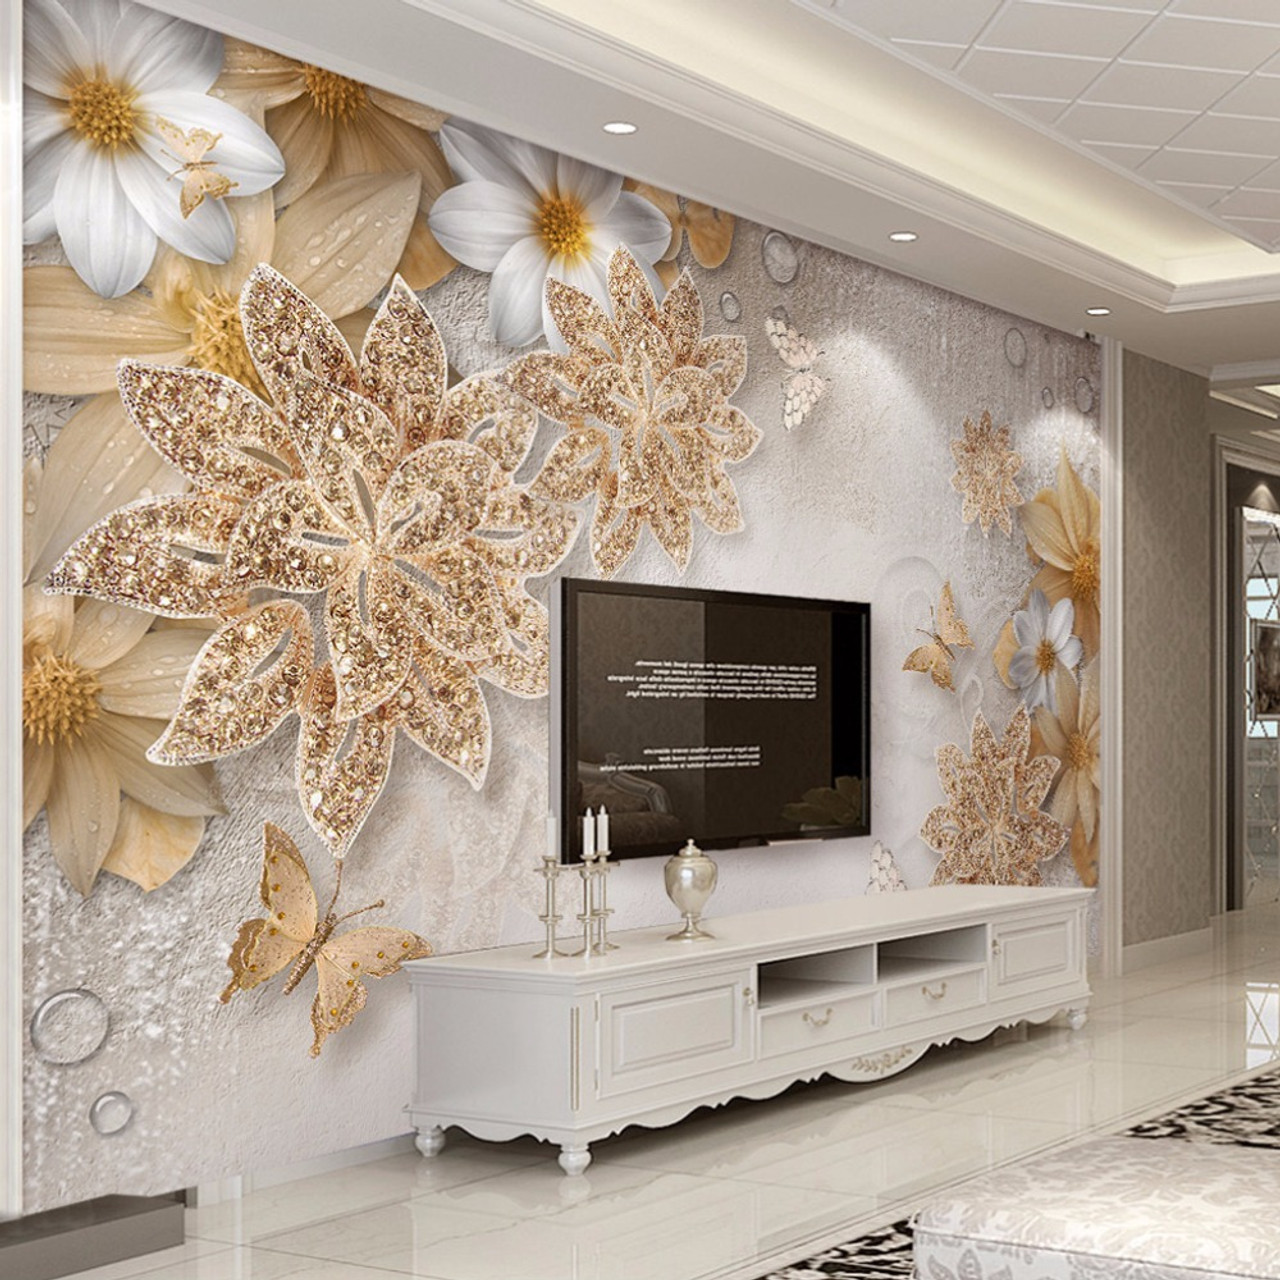 Custom Mural Wallpaper For Bedroom Walls 3d Luxury Gold Jewelry